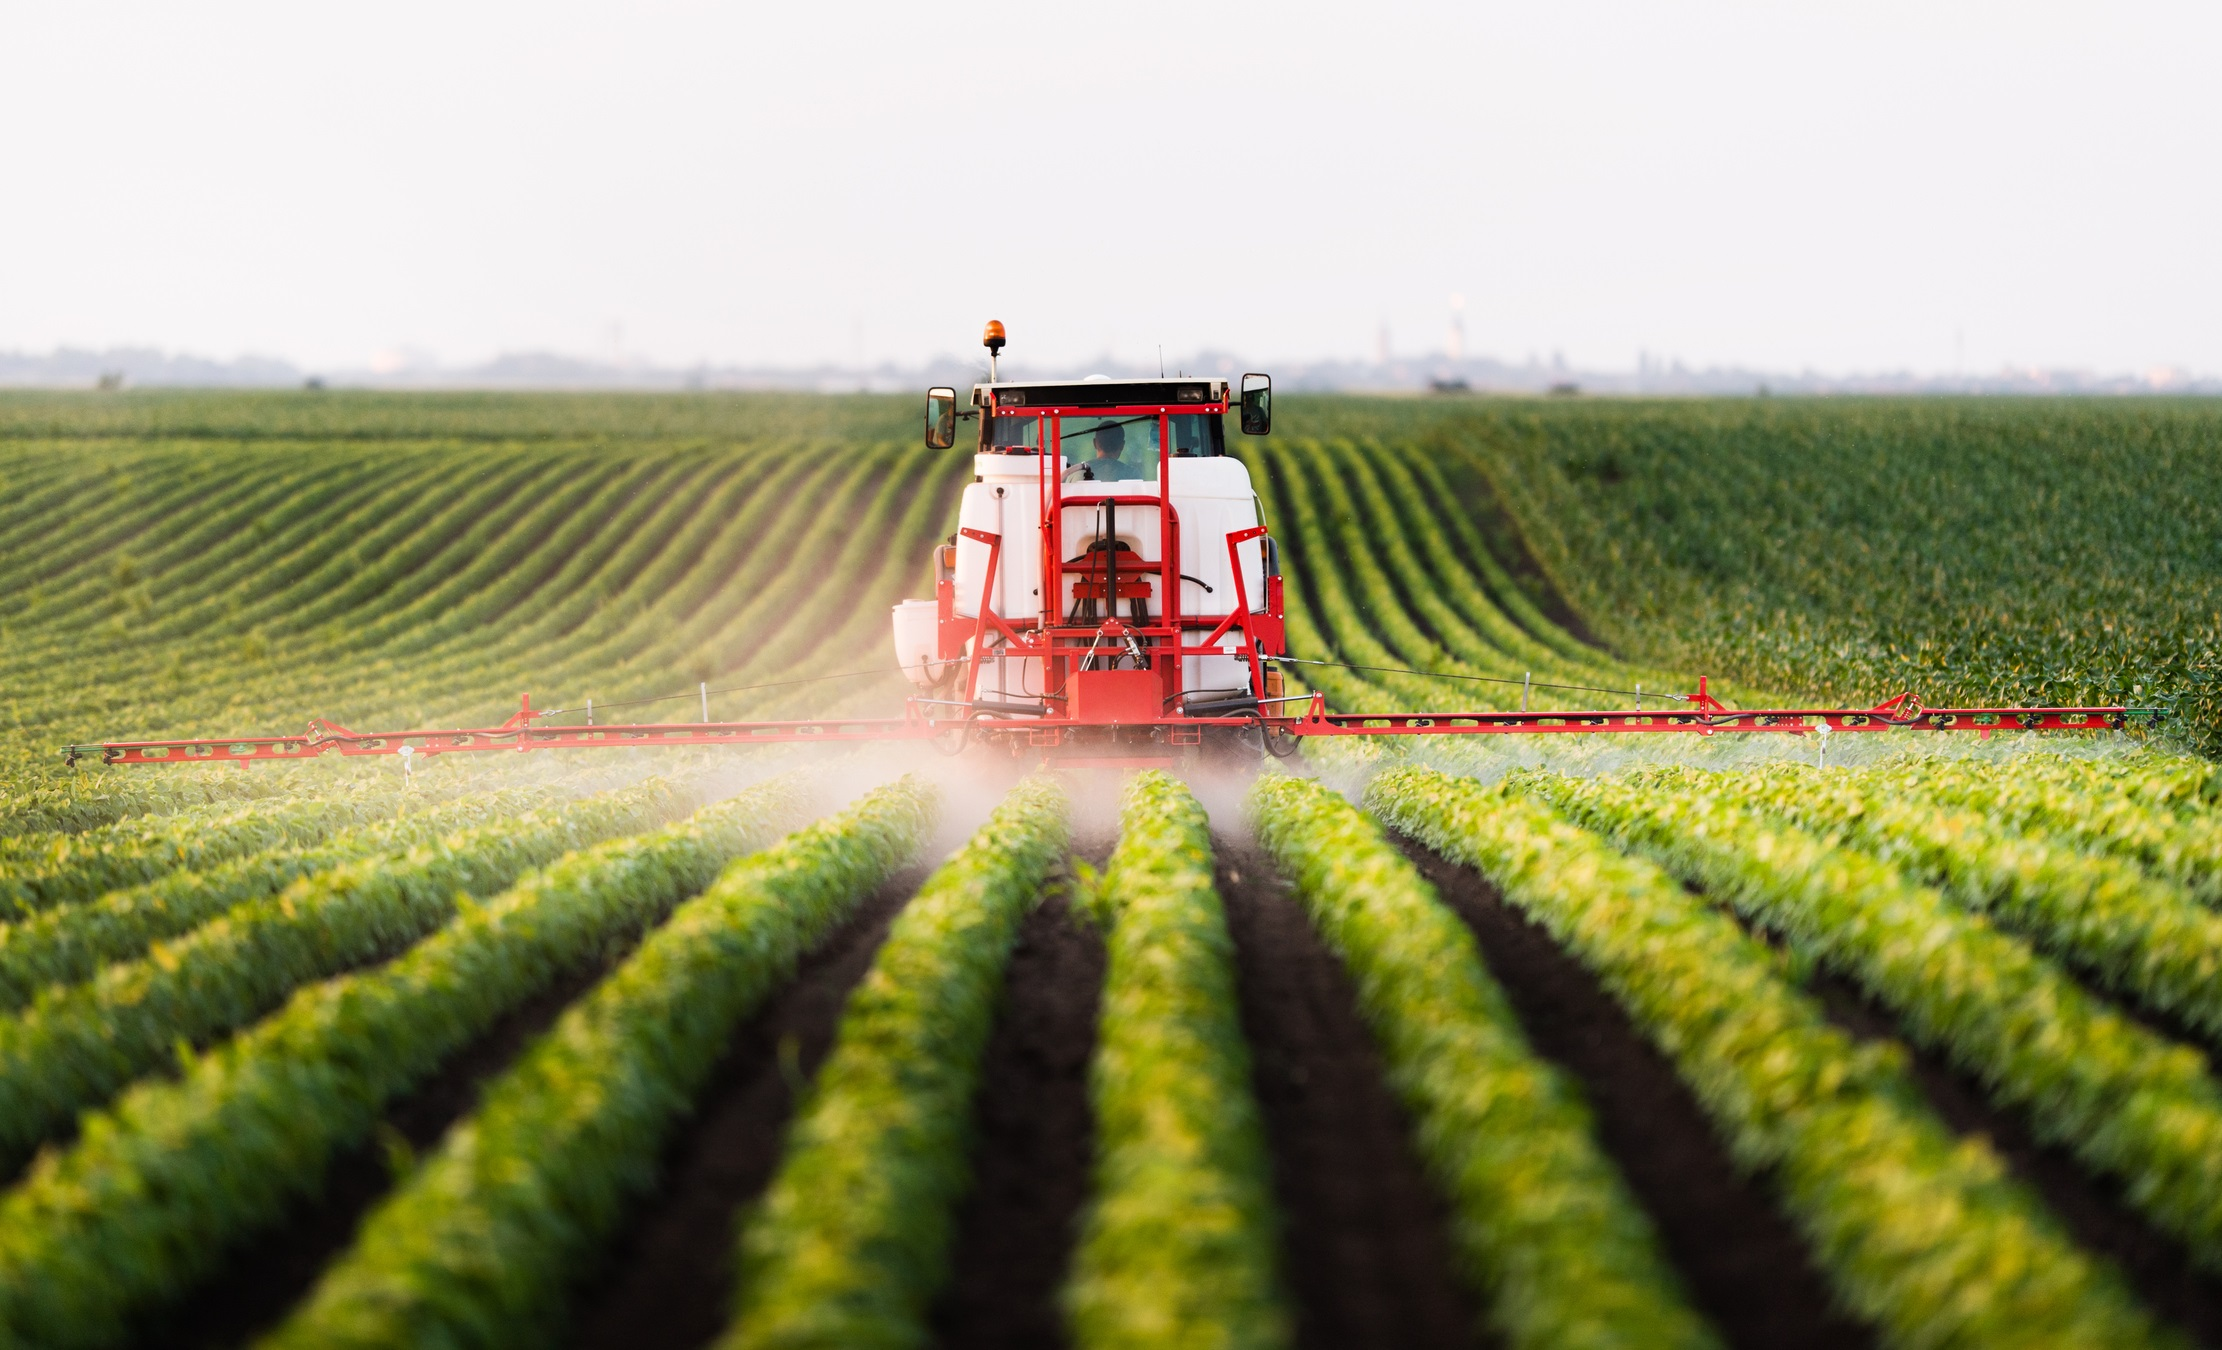 Photo of tractor spraying pesticides